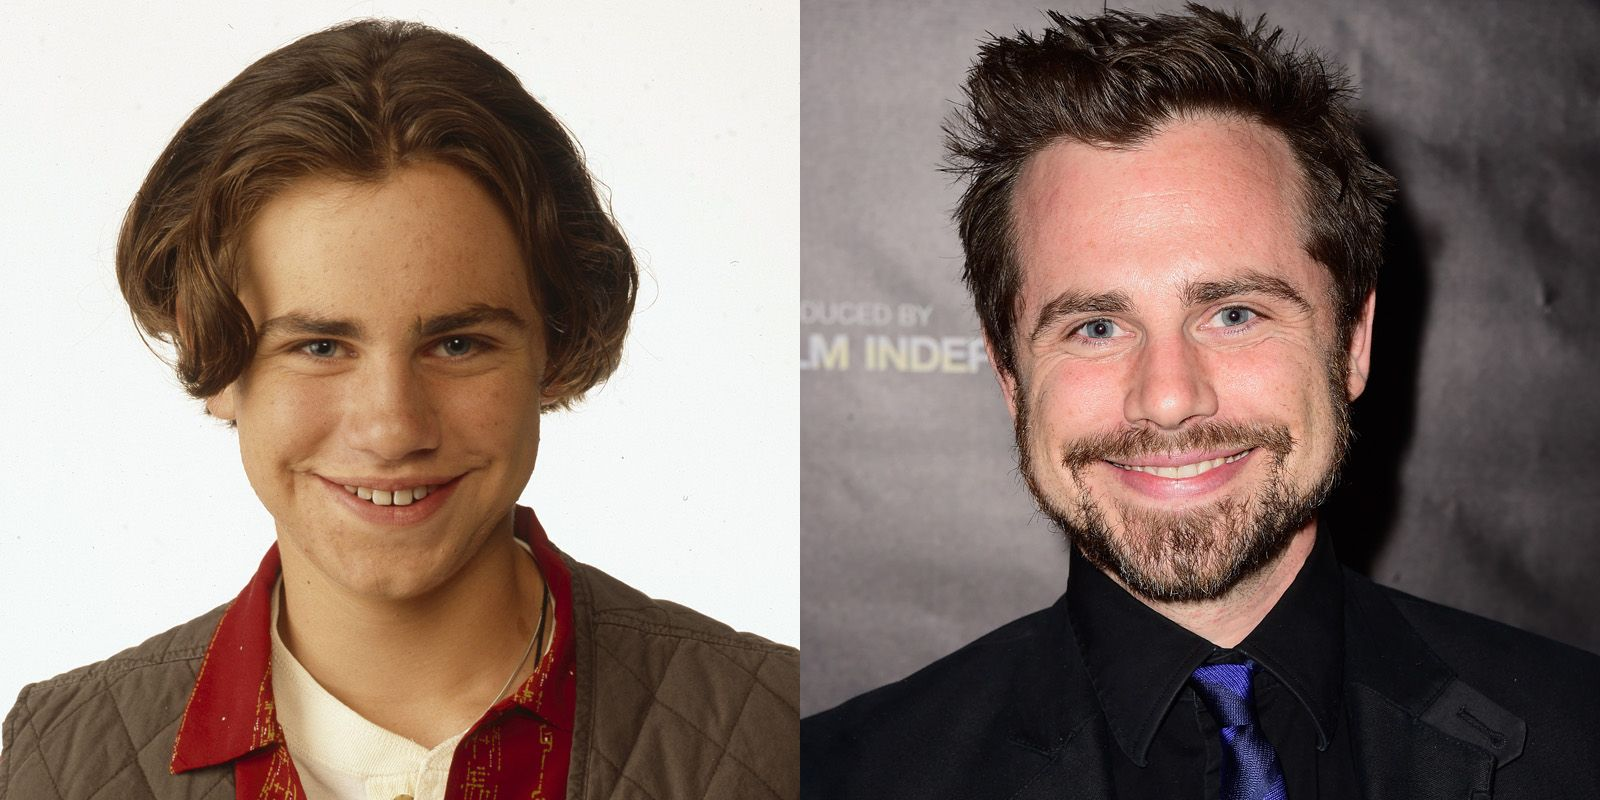 """<p>As Cory's best friend Shawn Hunter, Rider Strong has also returned with guest appearances on <em>Girl Meets World.</em> Post-<em>Boy Meets World</em><span class=""""redactor-invisible-space"""">, the actor graduated from Columbia University, got an MFA in fiction and literature, then wrote short stories and poems (that got published in literary journals! So he's legit). He writes and directs films alongside his brother Shiloh in a production company called Strong Brothers Magic Show.</span></p>"""